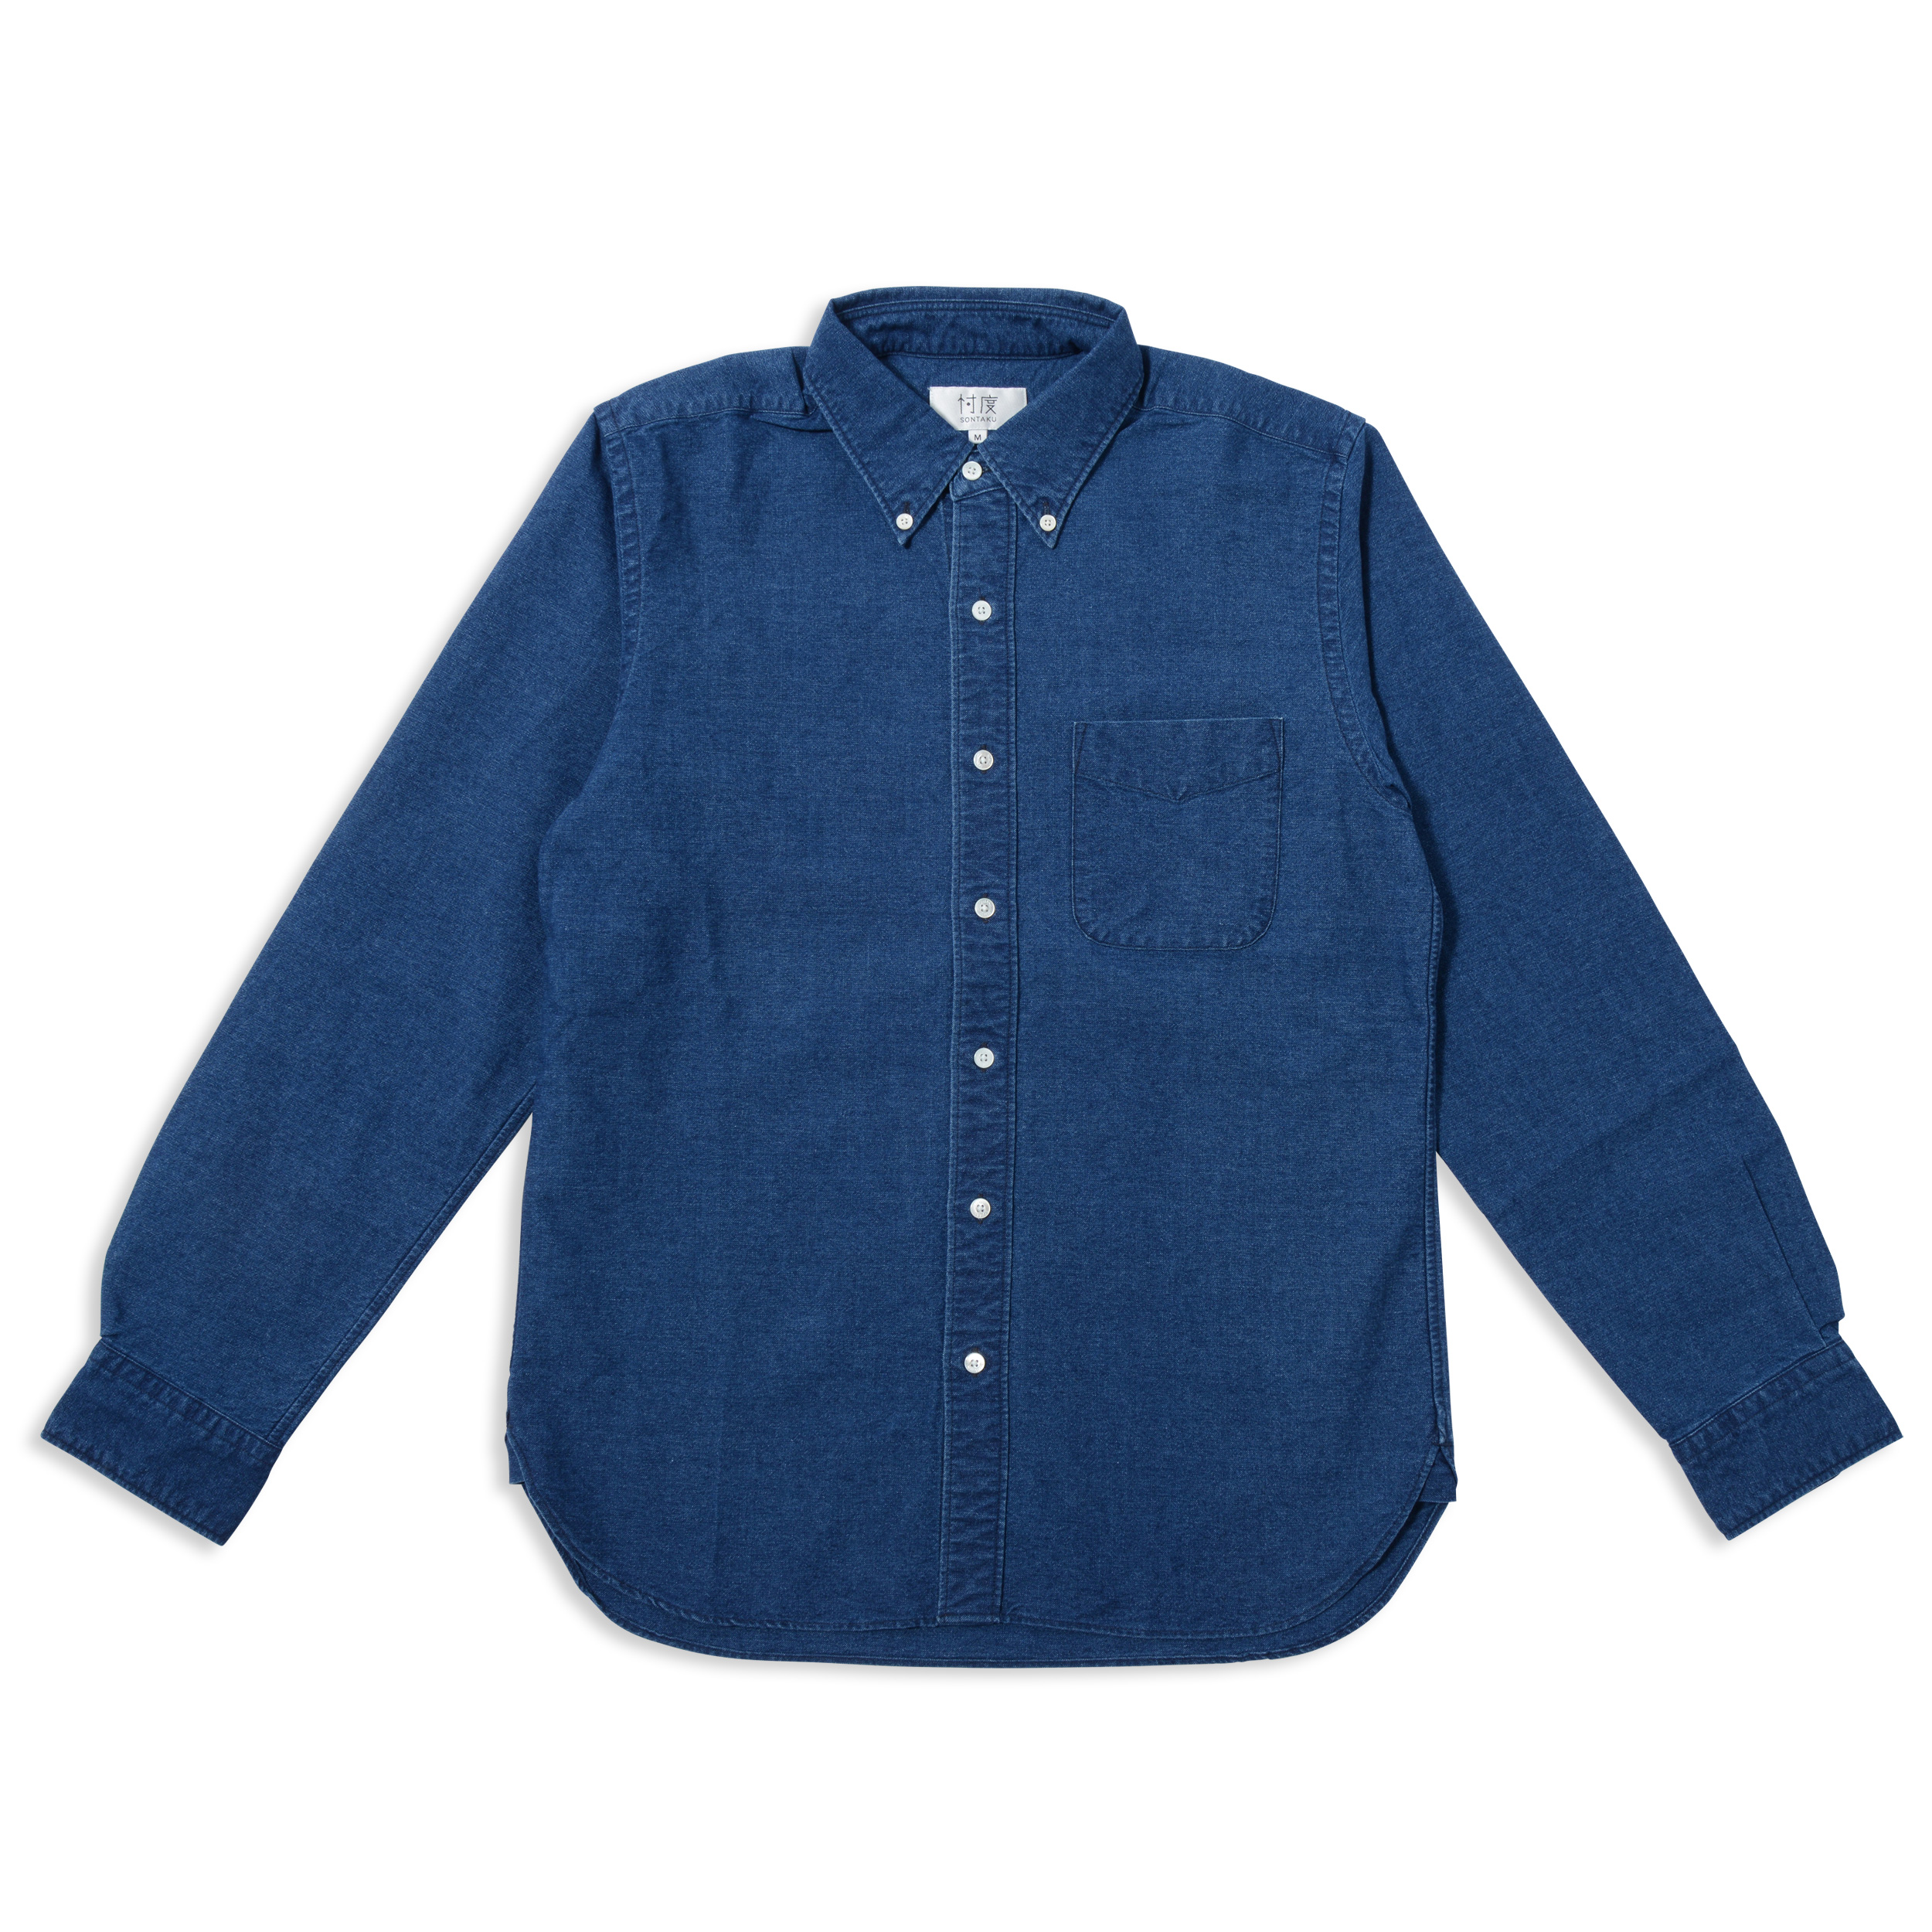 INDIGO OXFORD BD SHIRT(1703)